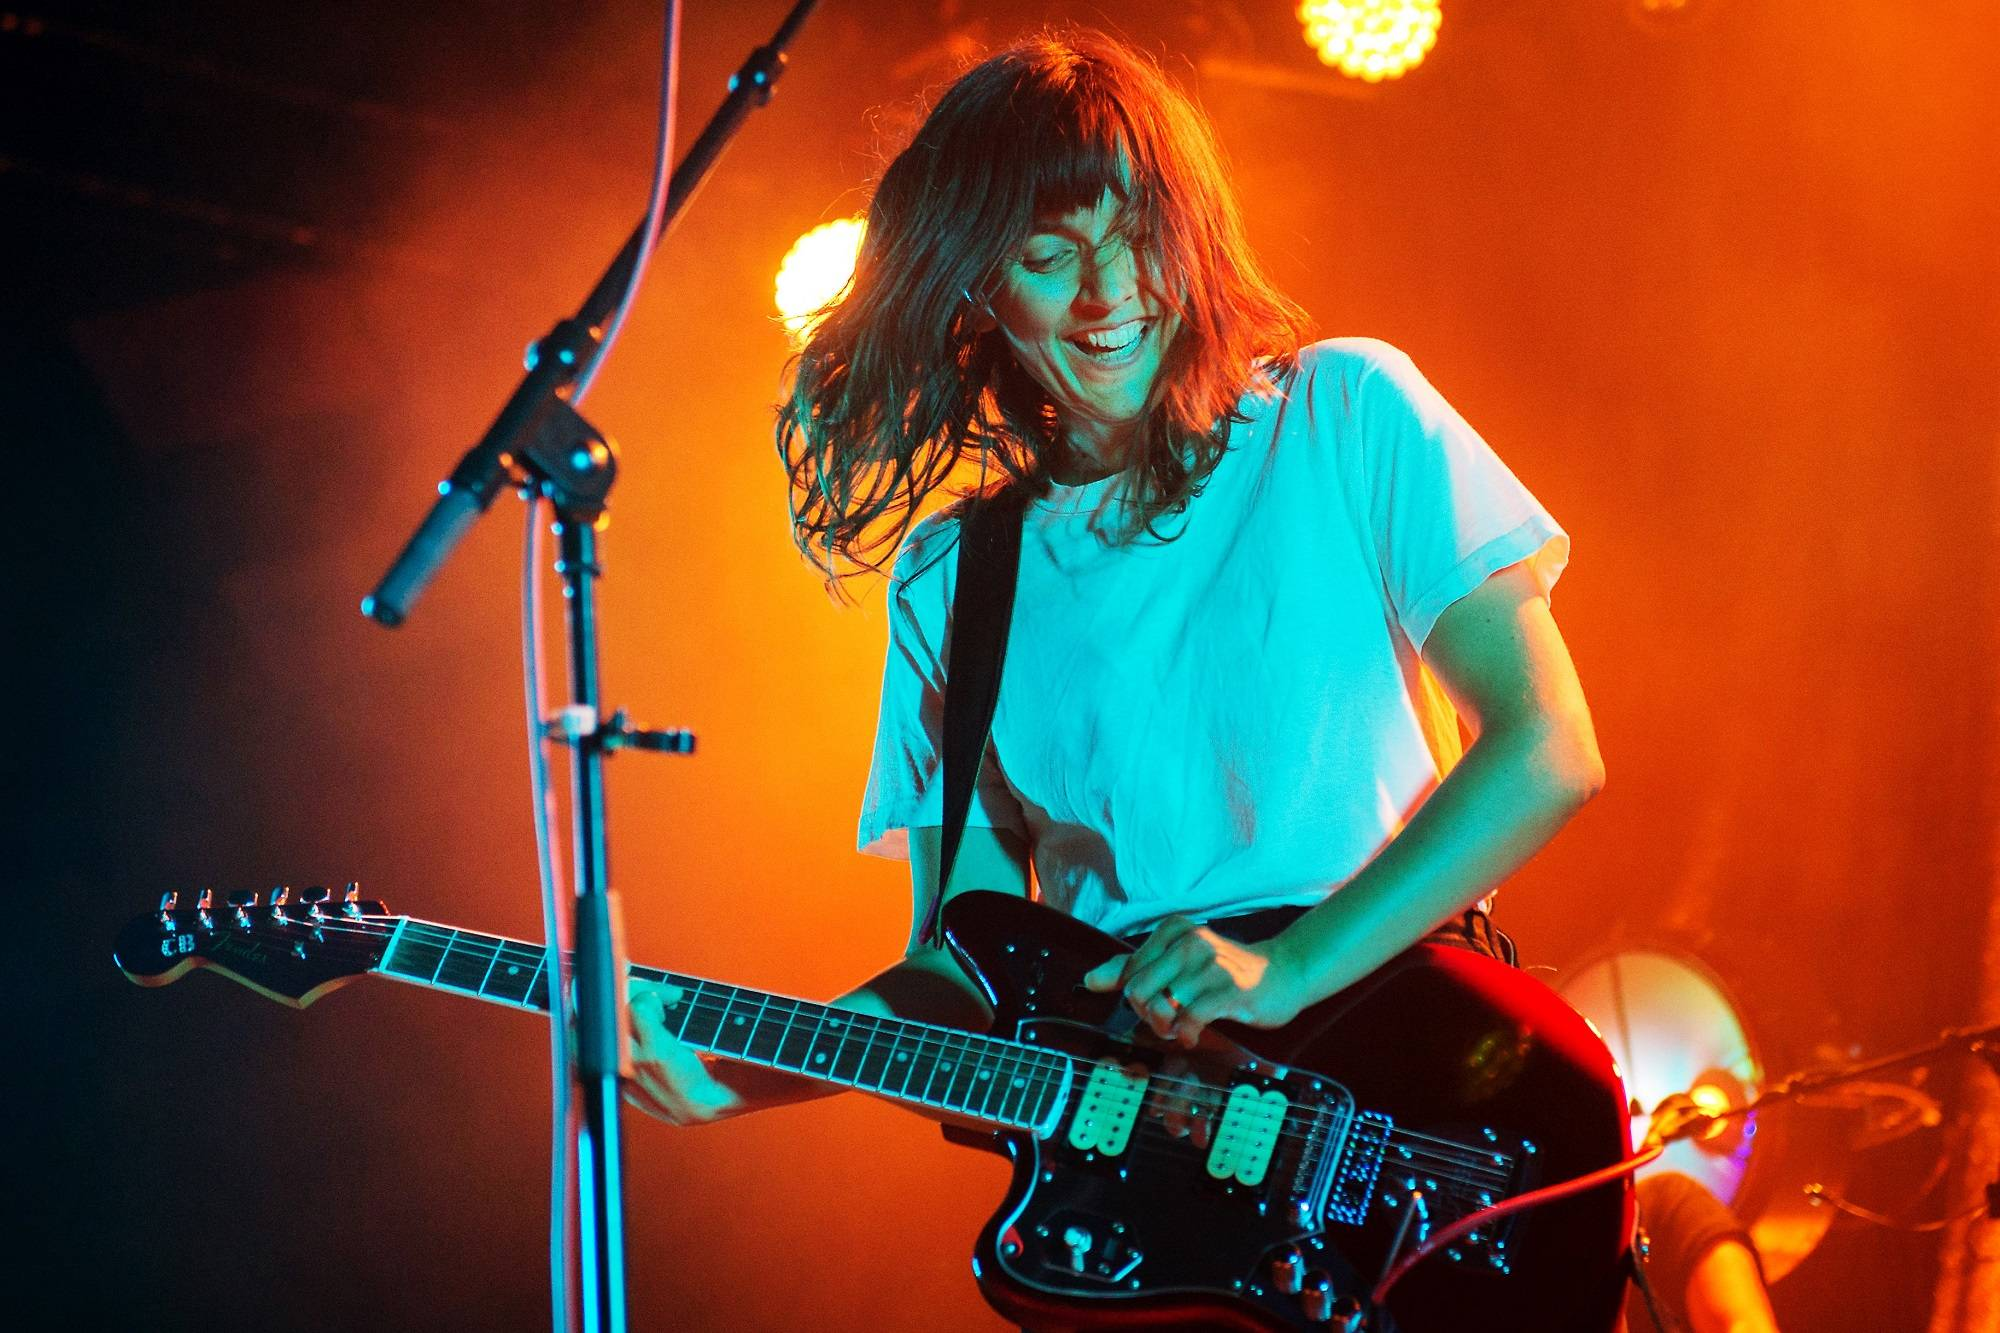 Singer-songwriter Courtney Barnett talks pizza toppings and her new album